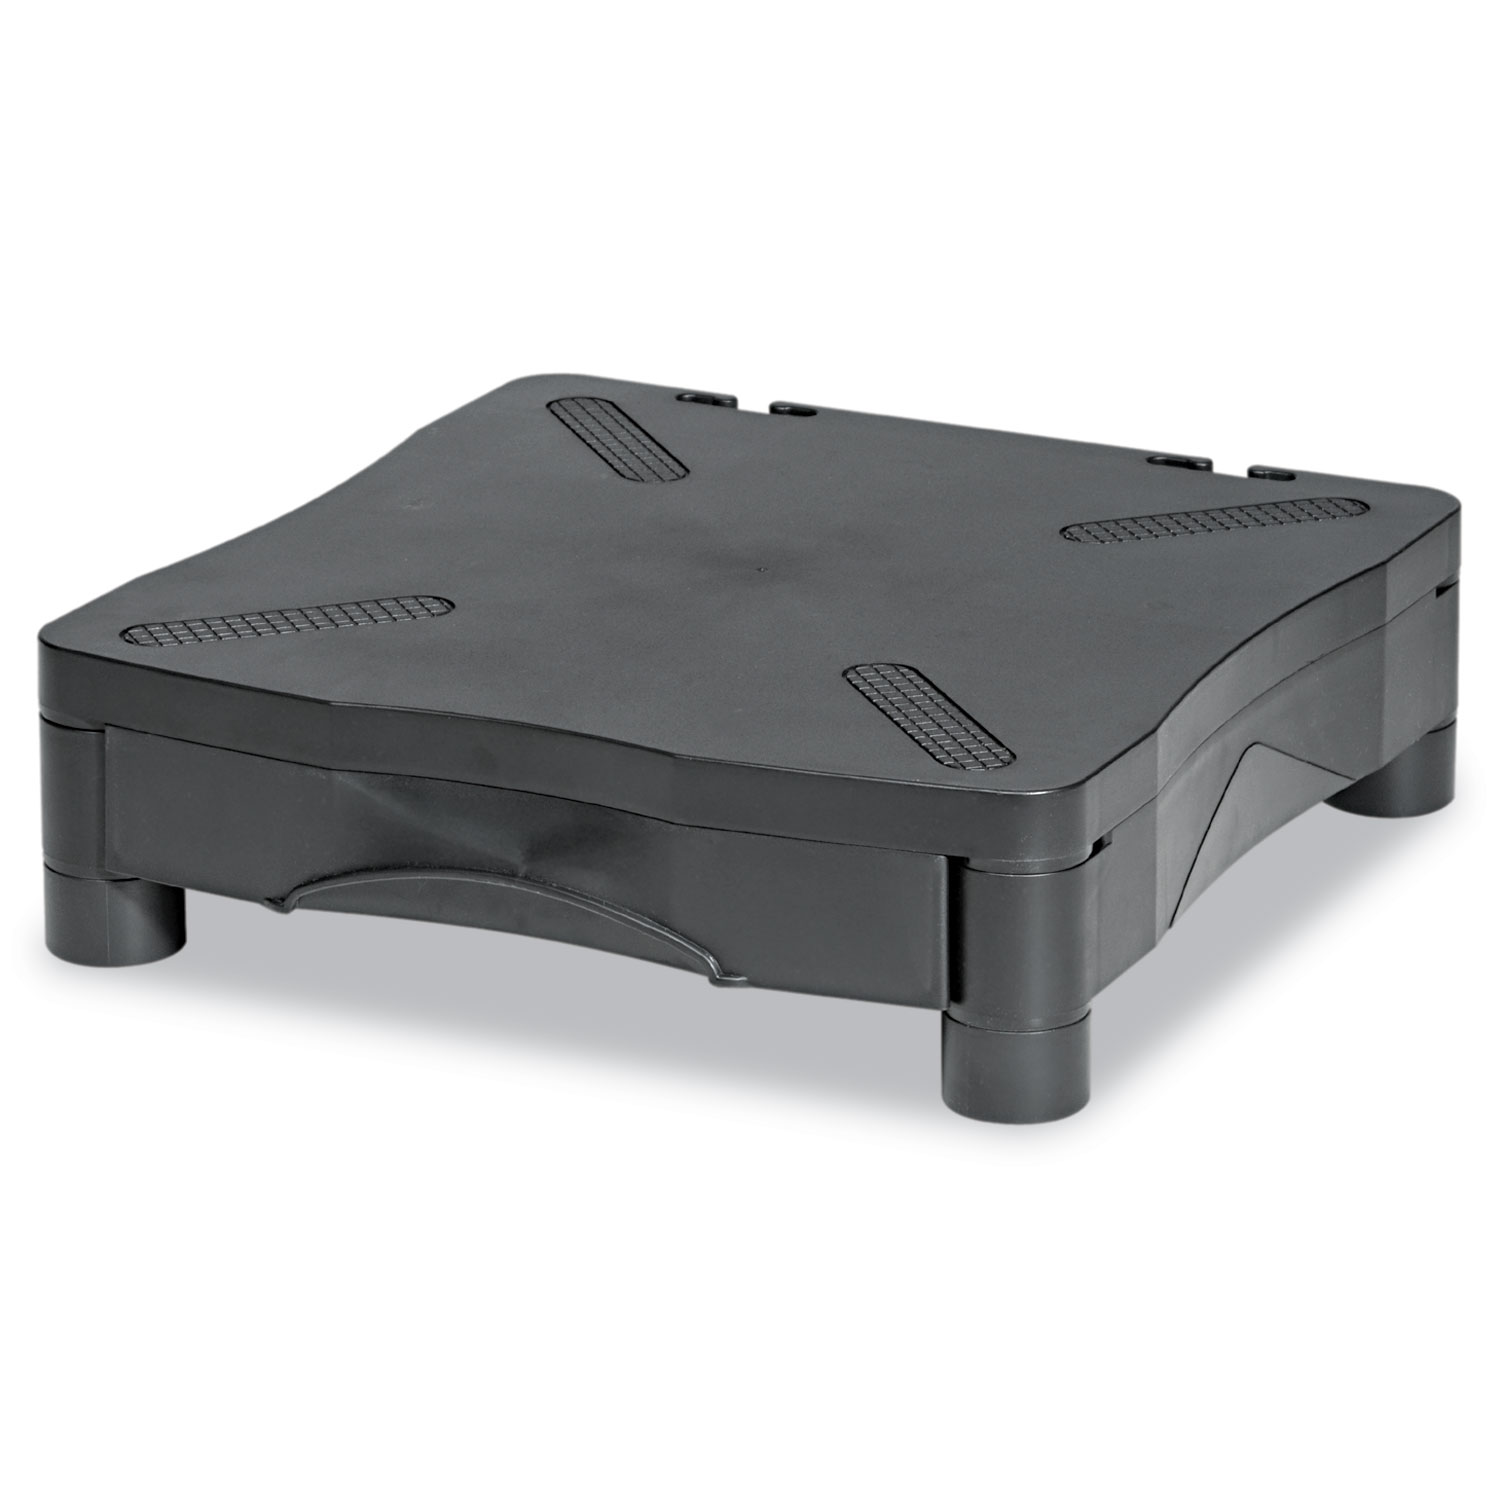 Buy Kelly Computer Supply Monitor/Printer Stand w/Drawer,13 1/4 x 13 1/2 x 4, Black Before Too Late